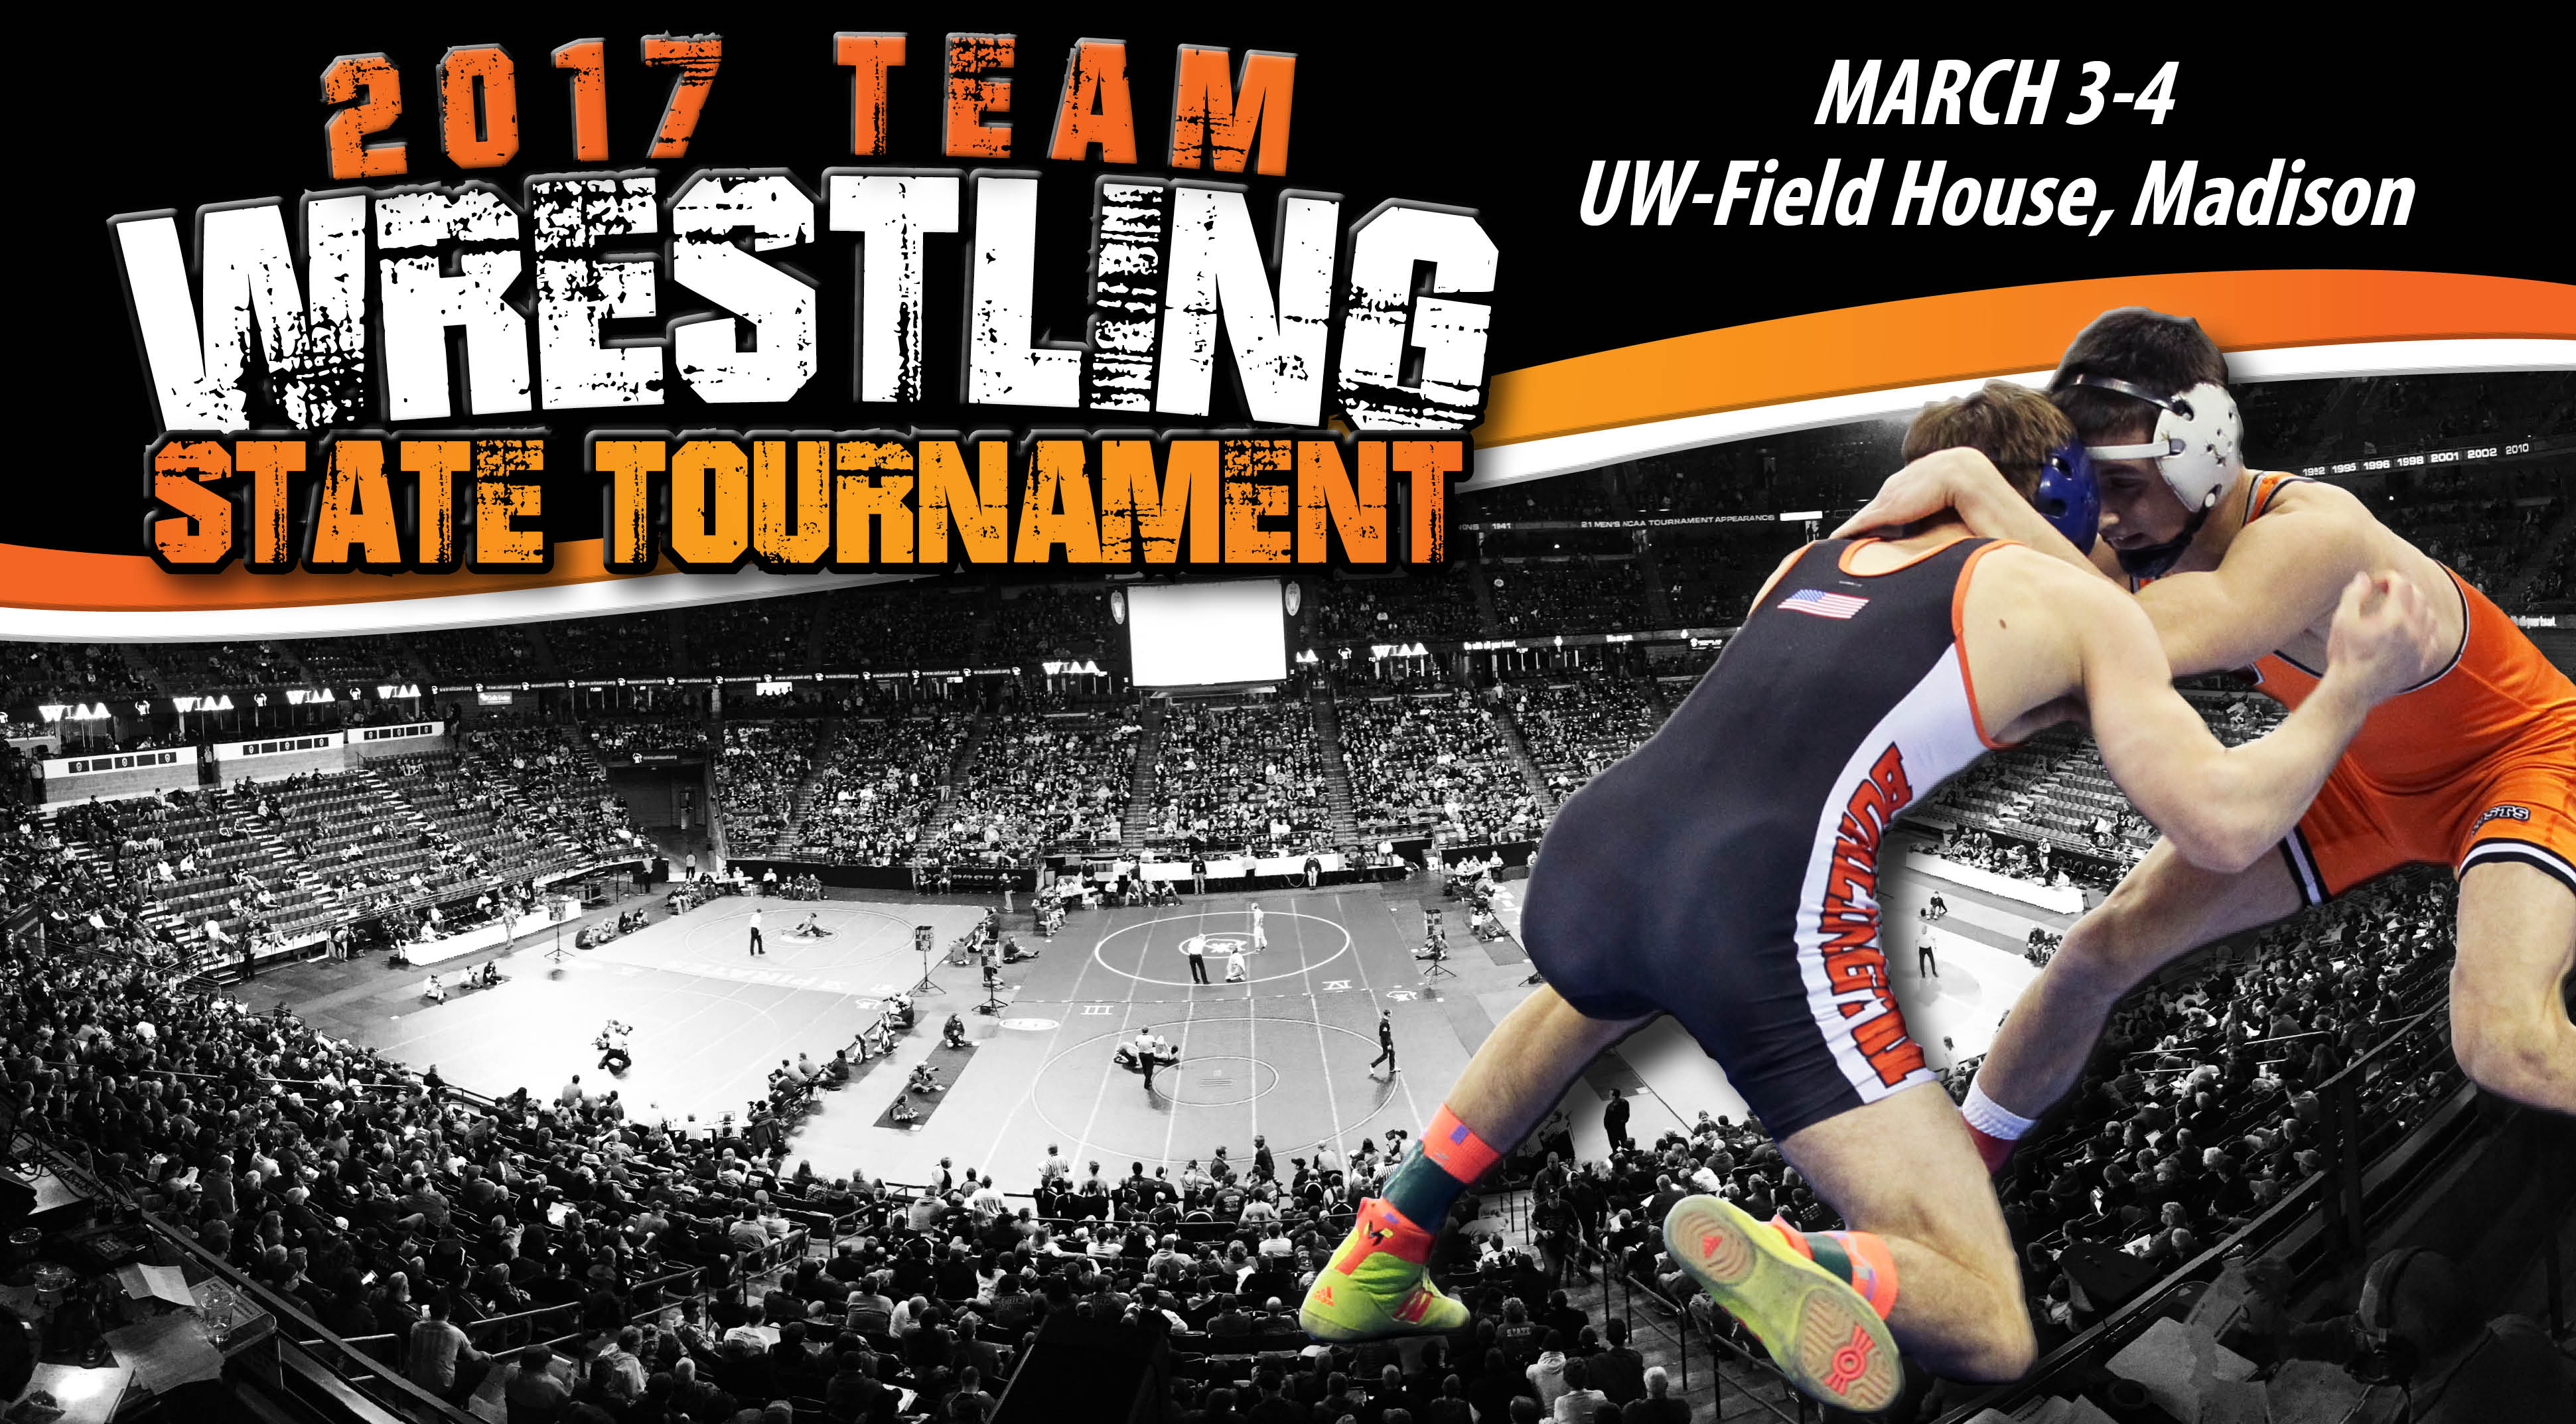 How can you find the WIAA wrestling rankings?